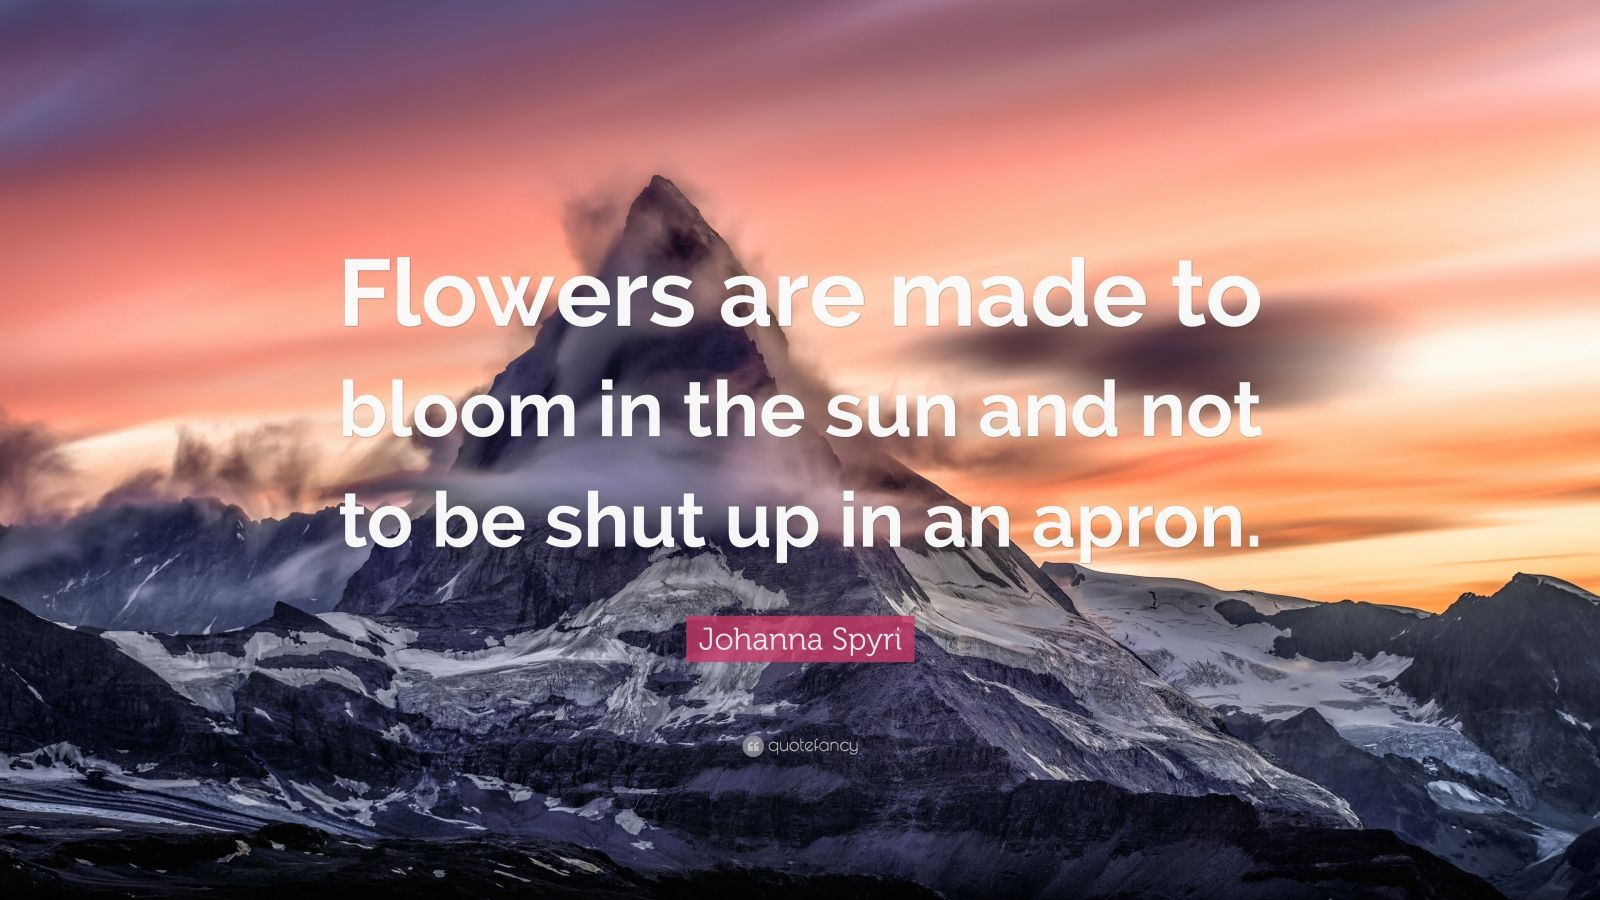 """Johanna Spyri Quote: """"Flowers are made to bloom in the sun and not to be shut up in an apron."""""""